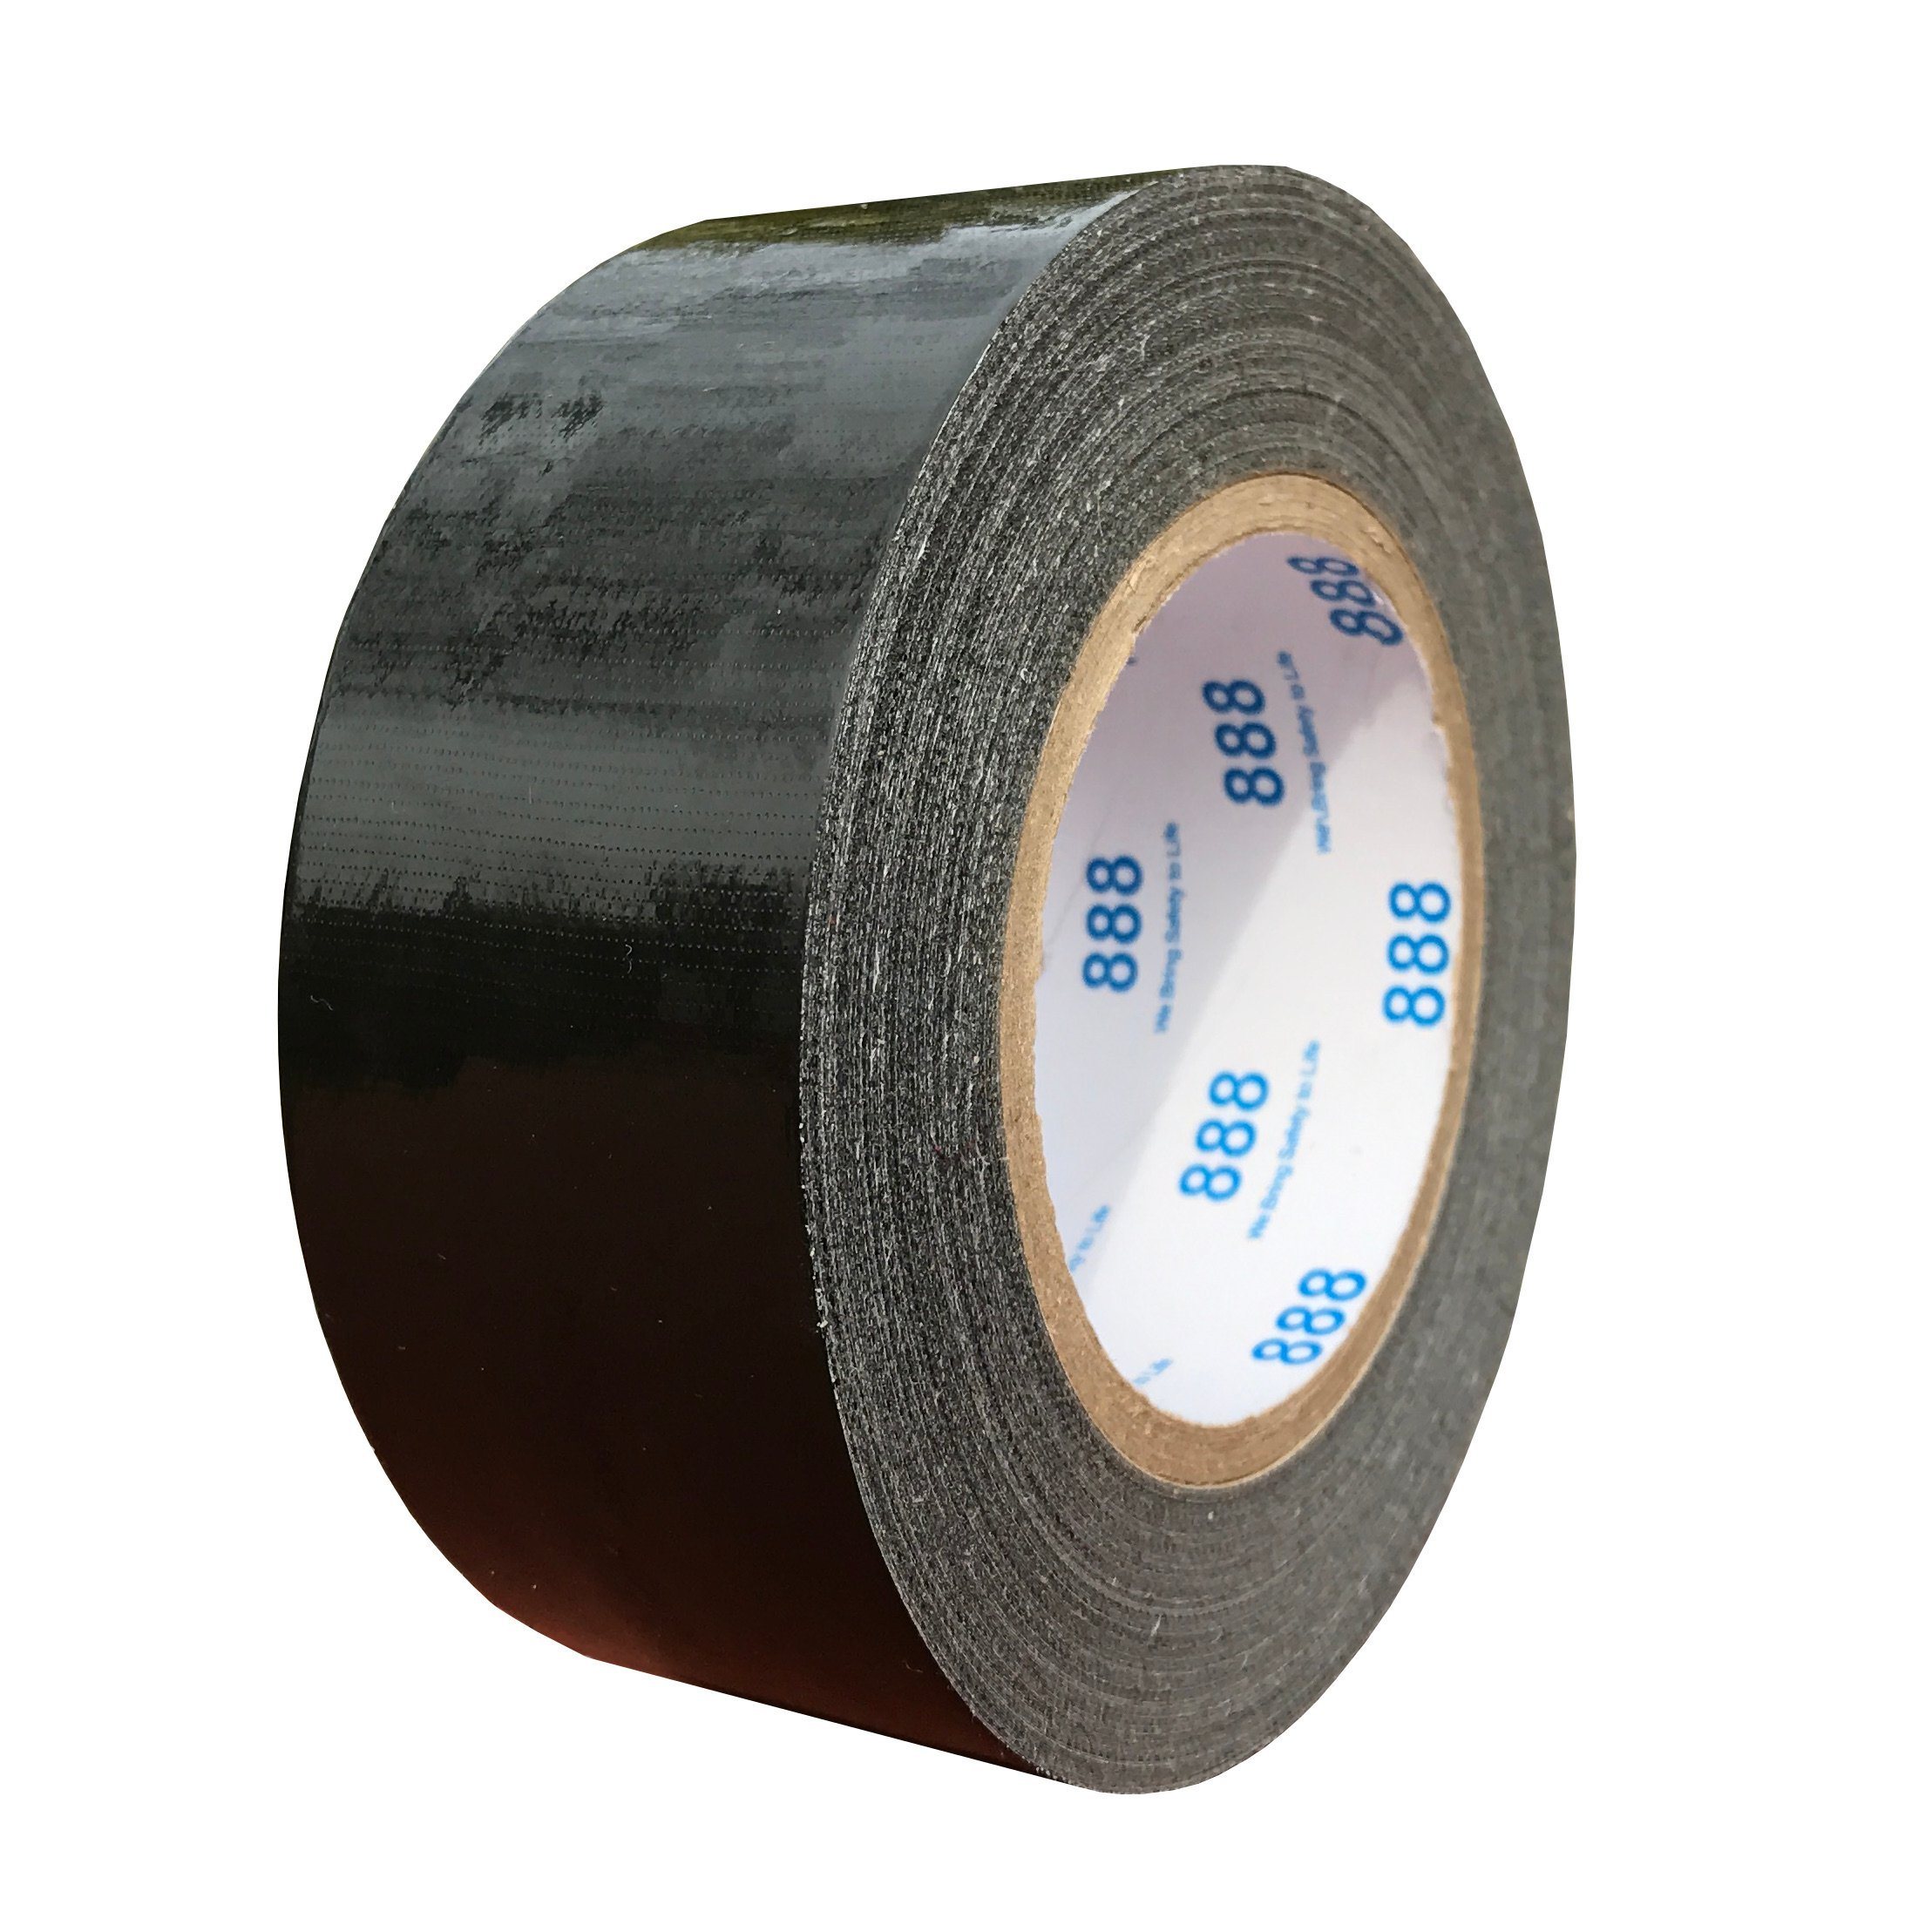 MG888 Black Duct Tape 1.88 Inches x 60 Yards, Duct Tape for Crafts, DIY, Repairs, Indoor Outdoor Use, Book Repair, Must Have Garage Tool